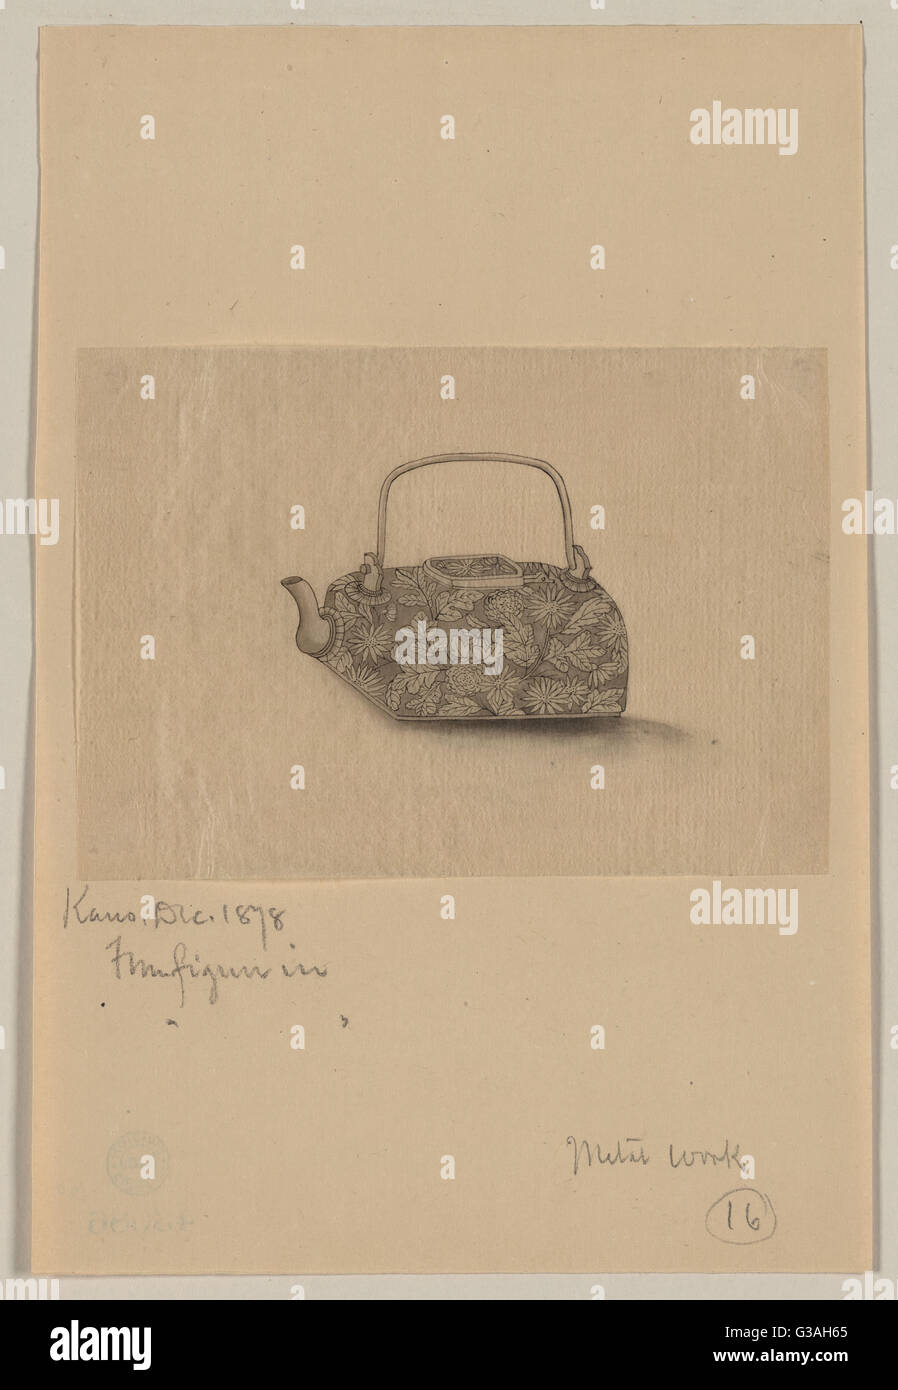 Metal teapot with floral designs. Date 1878 Dec. - Stock Image